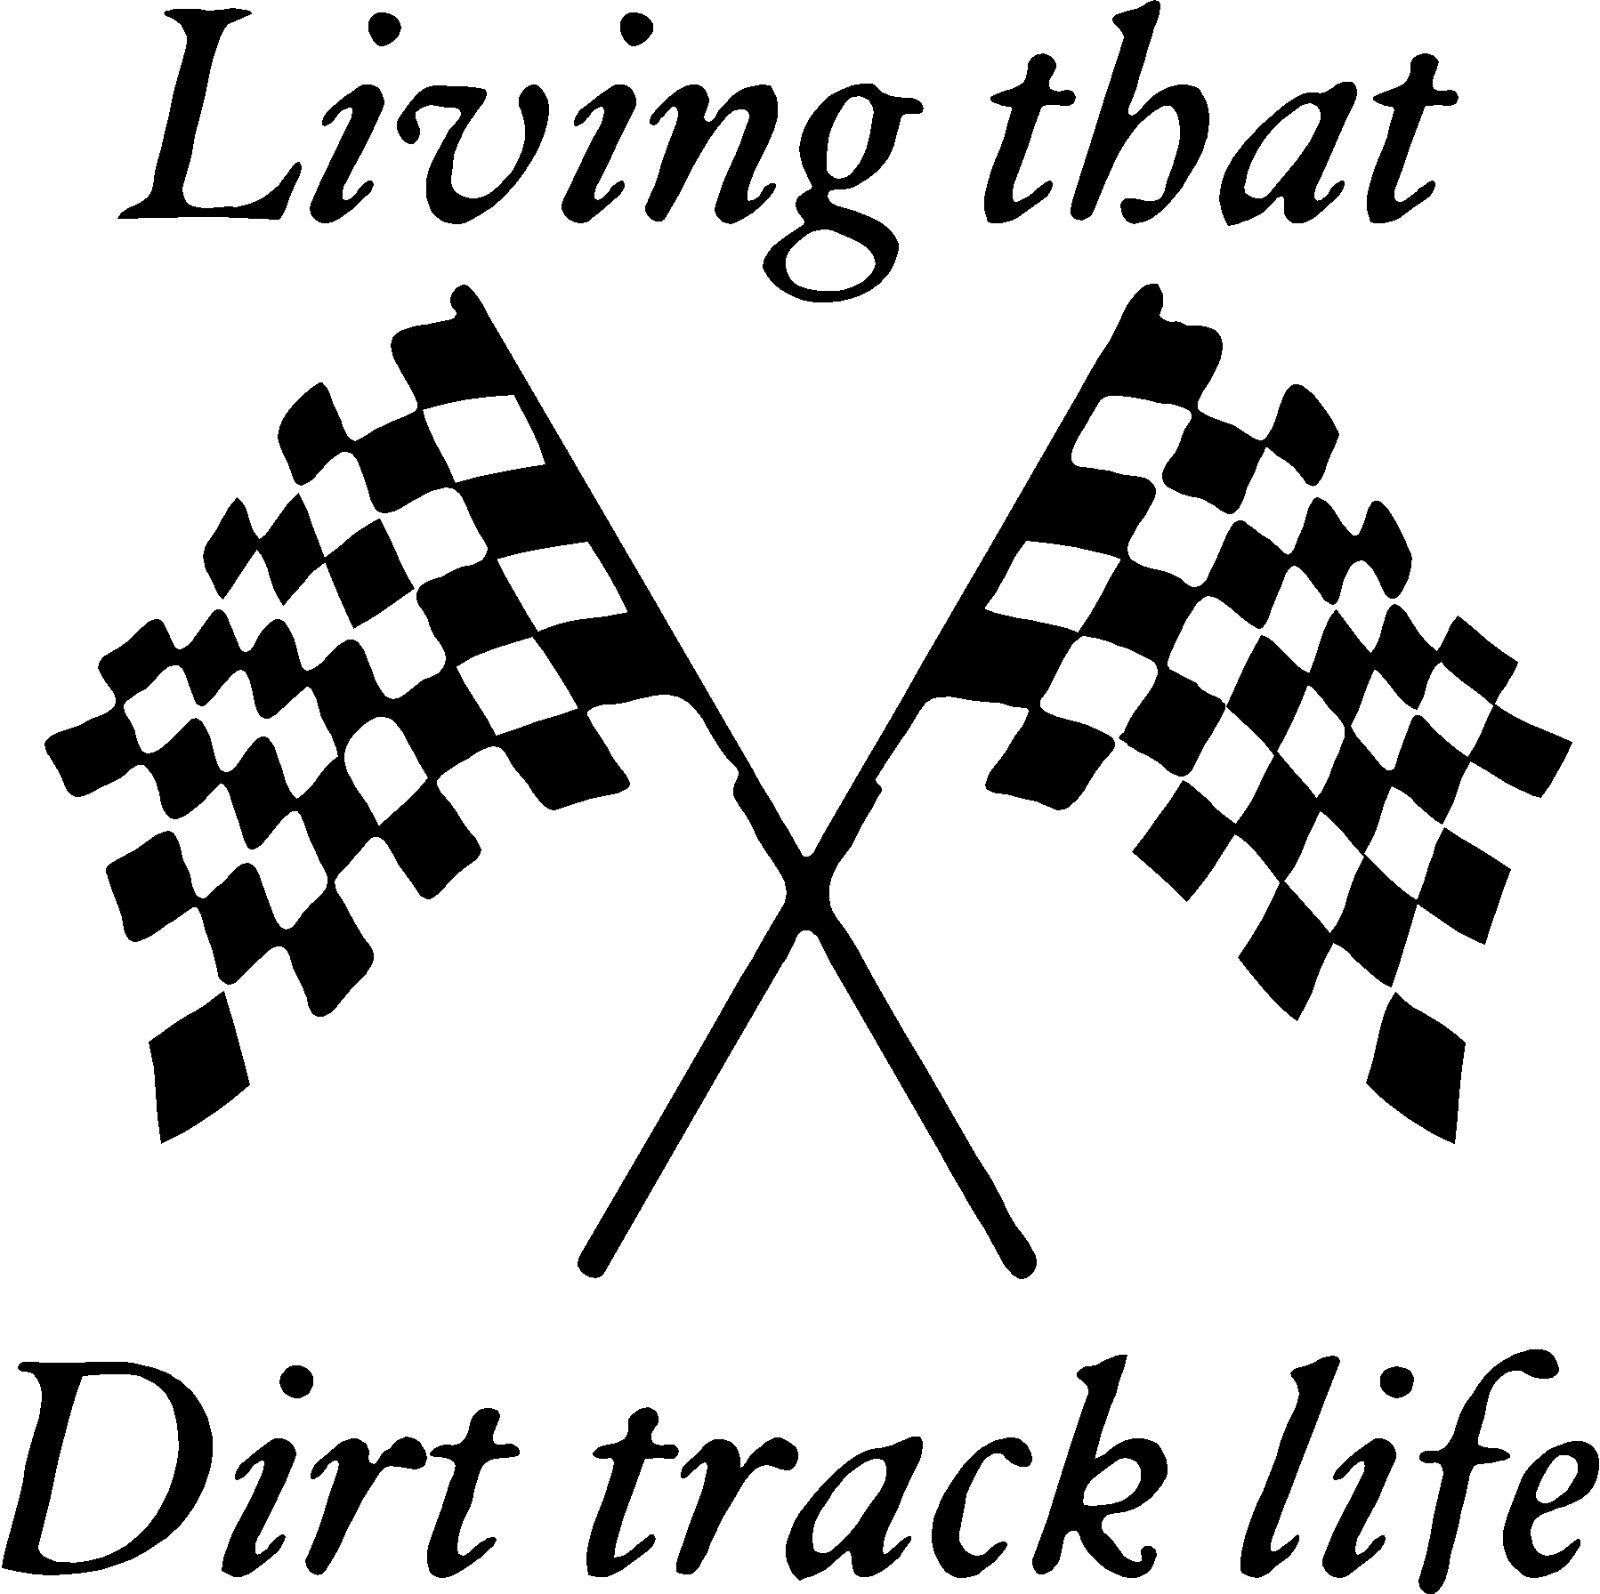 Living That Dirt Track Life Sticker Available In Several Vinyl Colors Dirt Track Racing Shirts Dirt Track Dirt Racing Quotes [ 1594 x 1600 Pixel ]